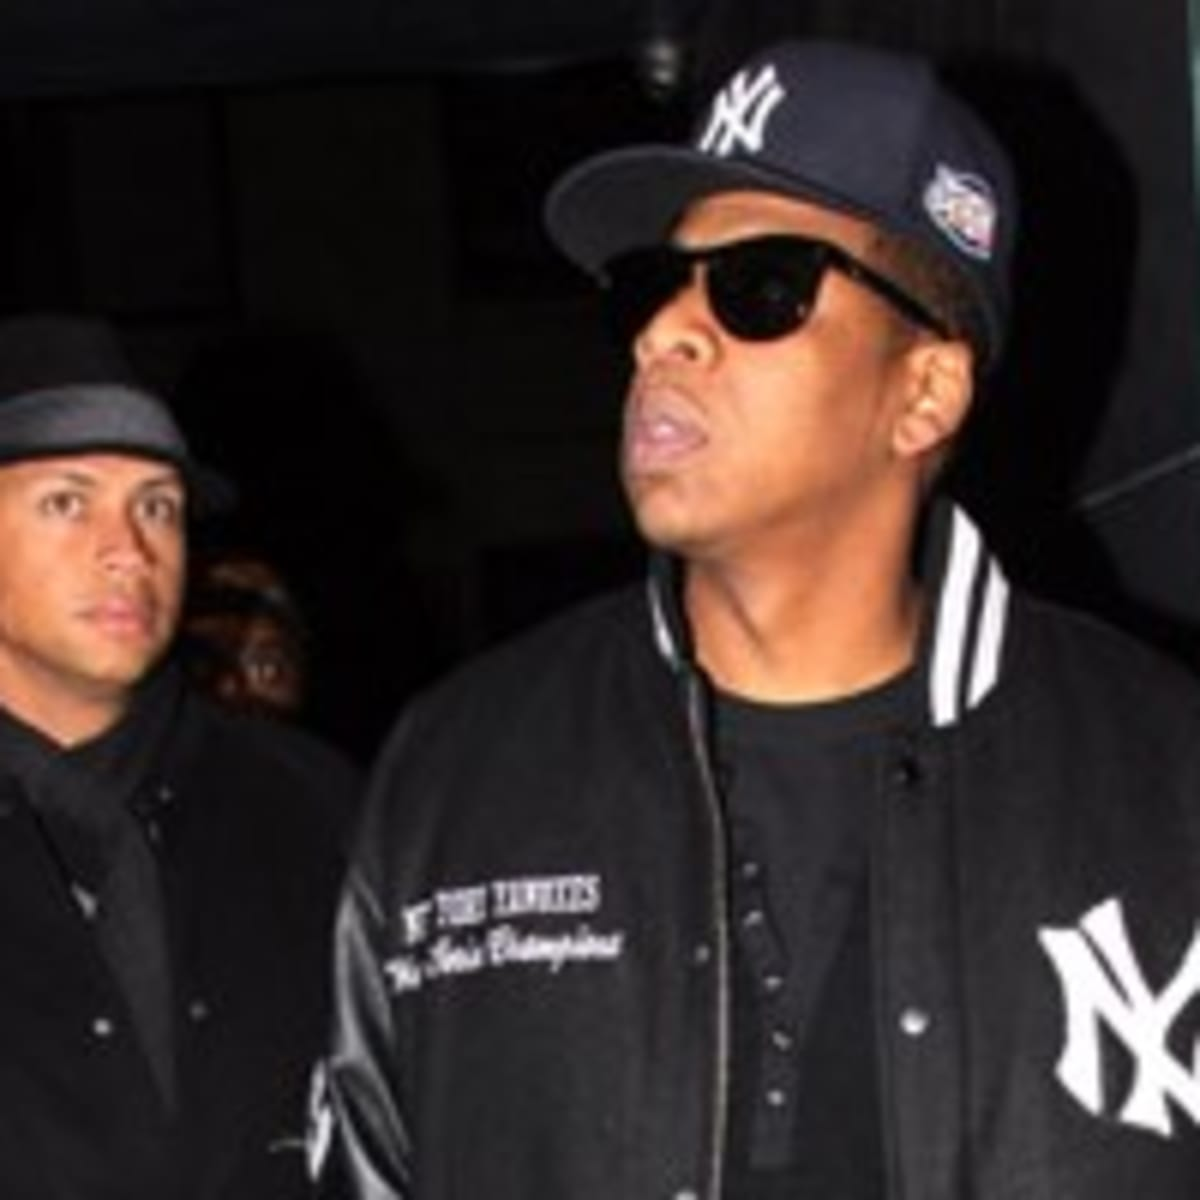 Fresh Celeb Jay Z Hosts New York Yankees Victory Party At 40 40 Club Freshness Mag